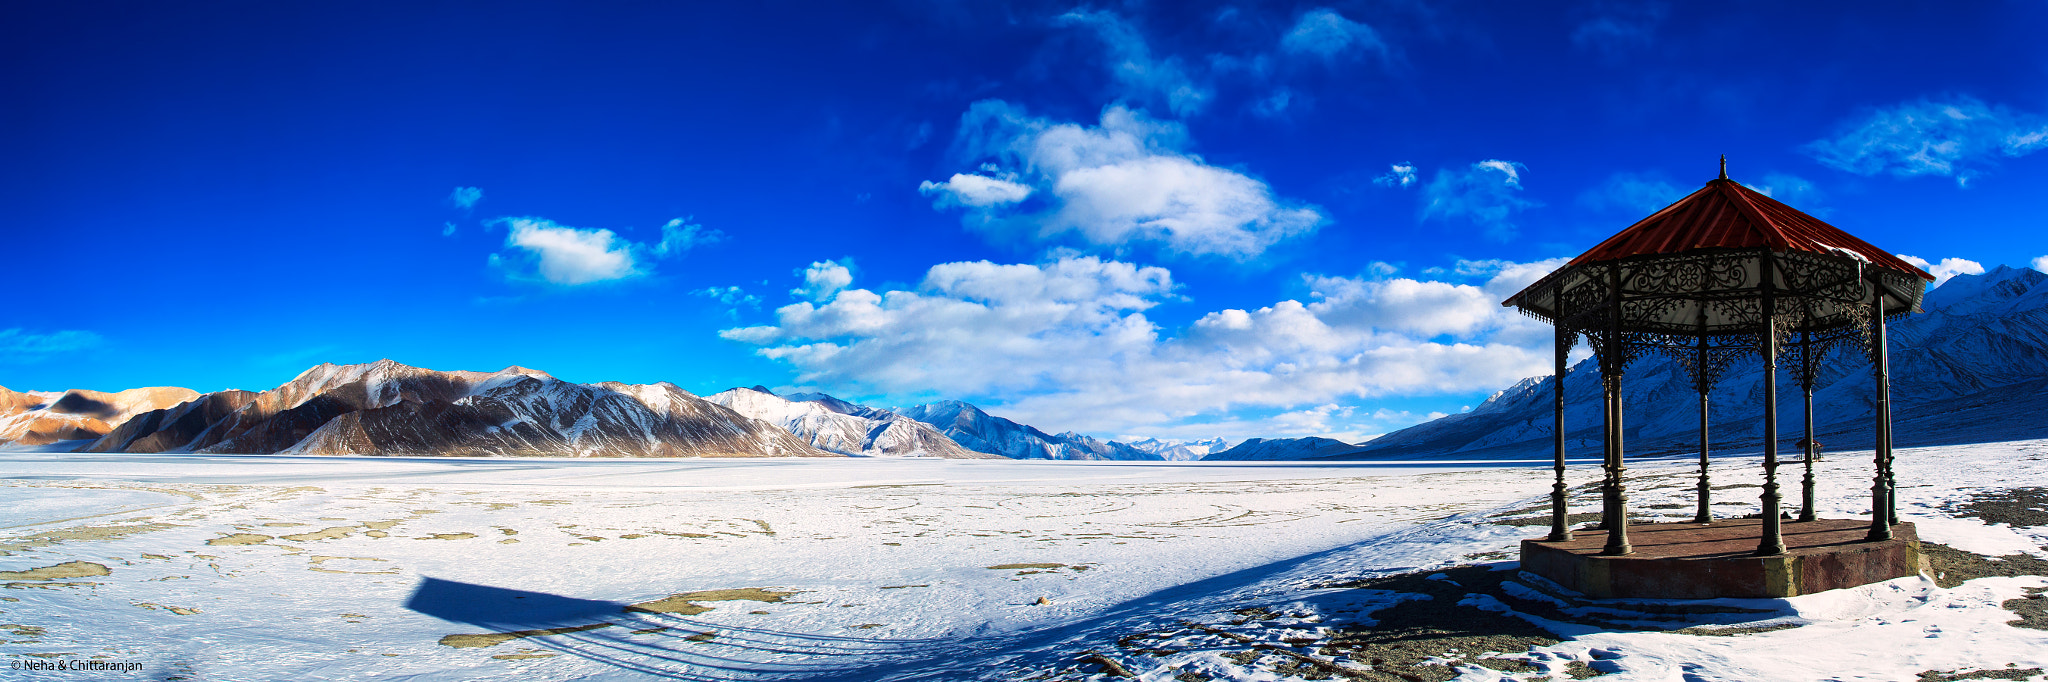 Photograph Pan Gong Lake, Ladakh, India by Neha & Chittaranjan Desai on 500px